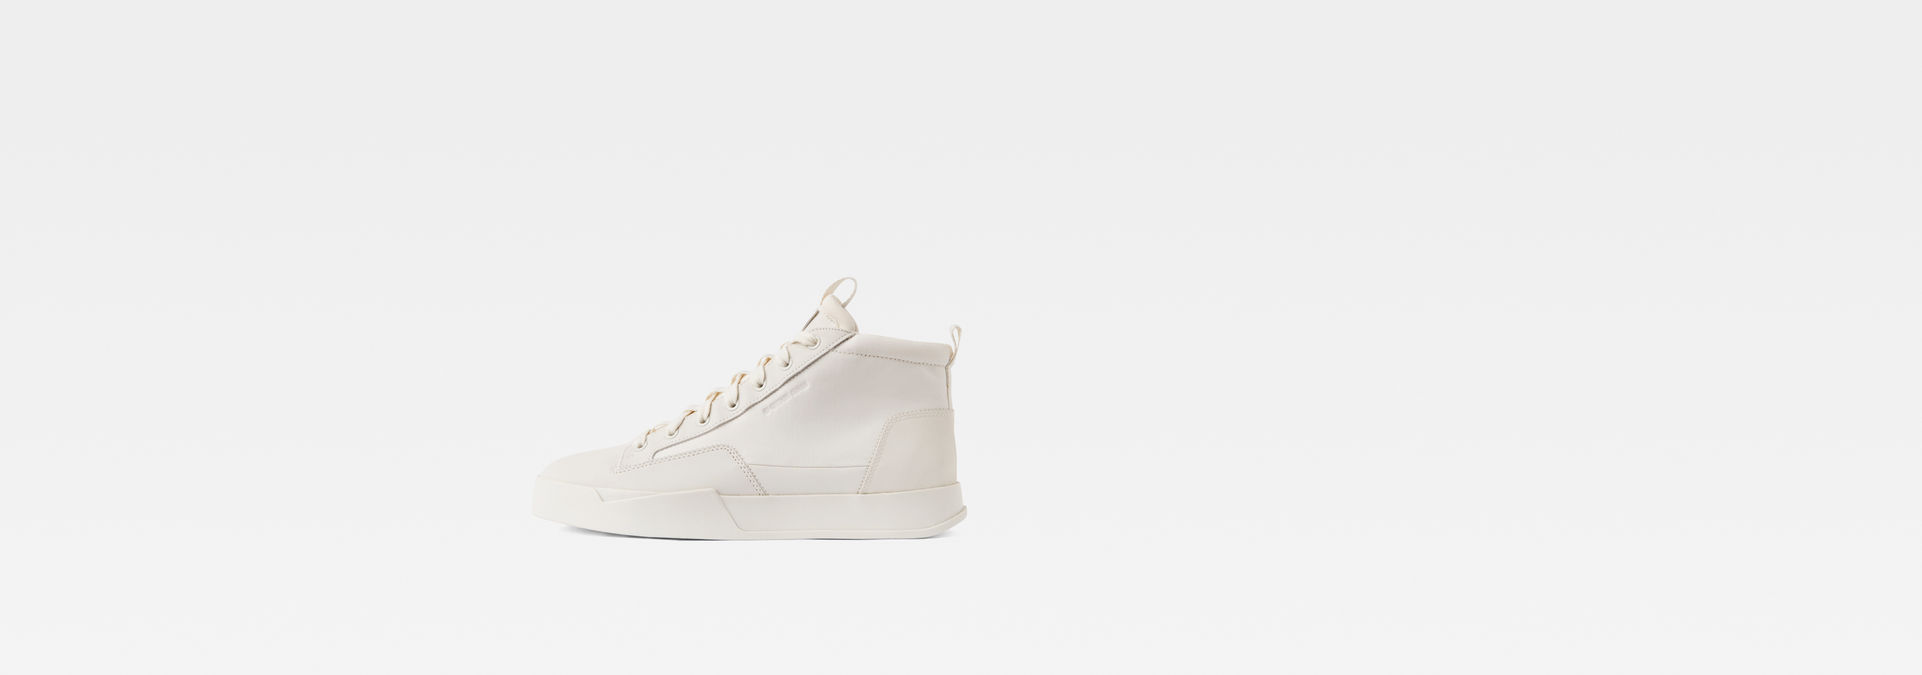 e364a4c8127 G-Star RAW® Rackam Core Mid Sneakers White side view ...